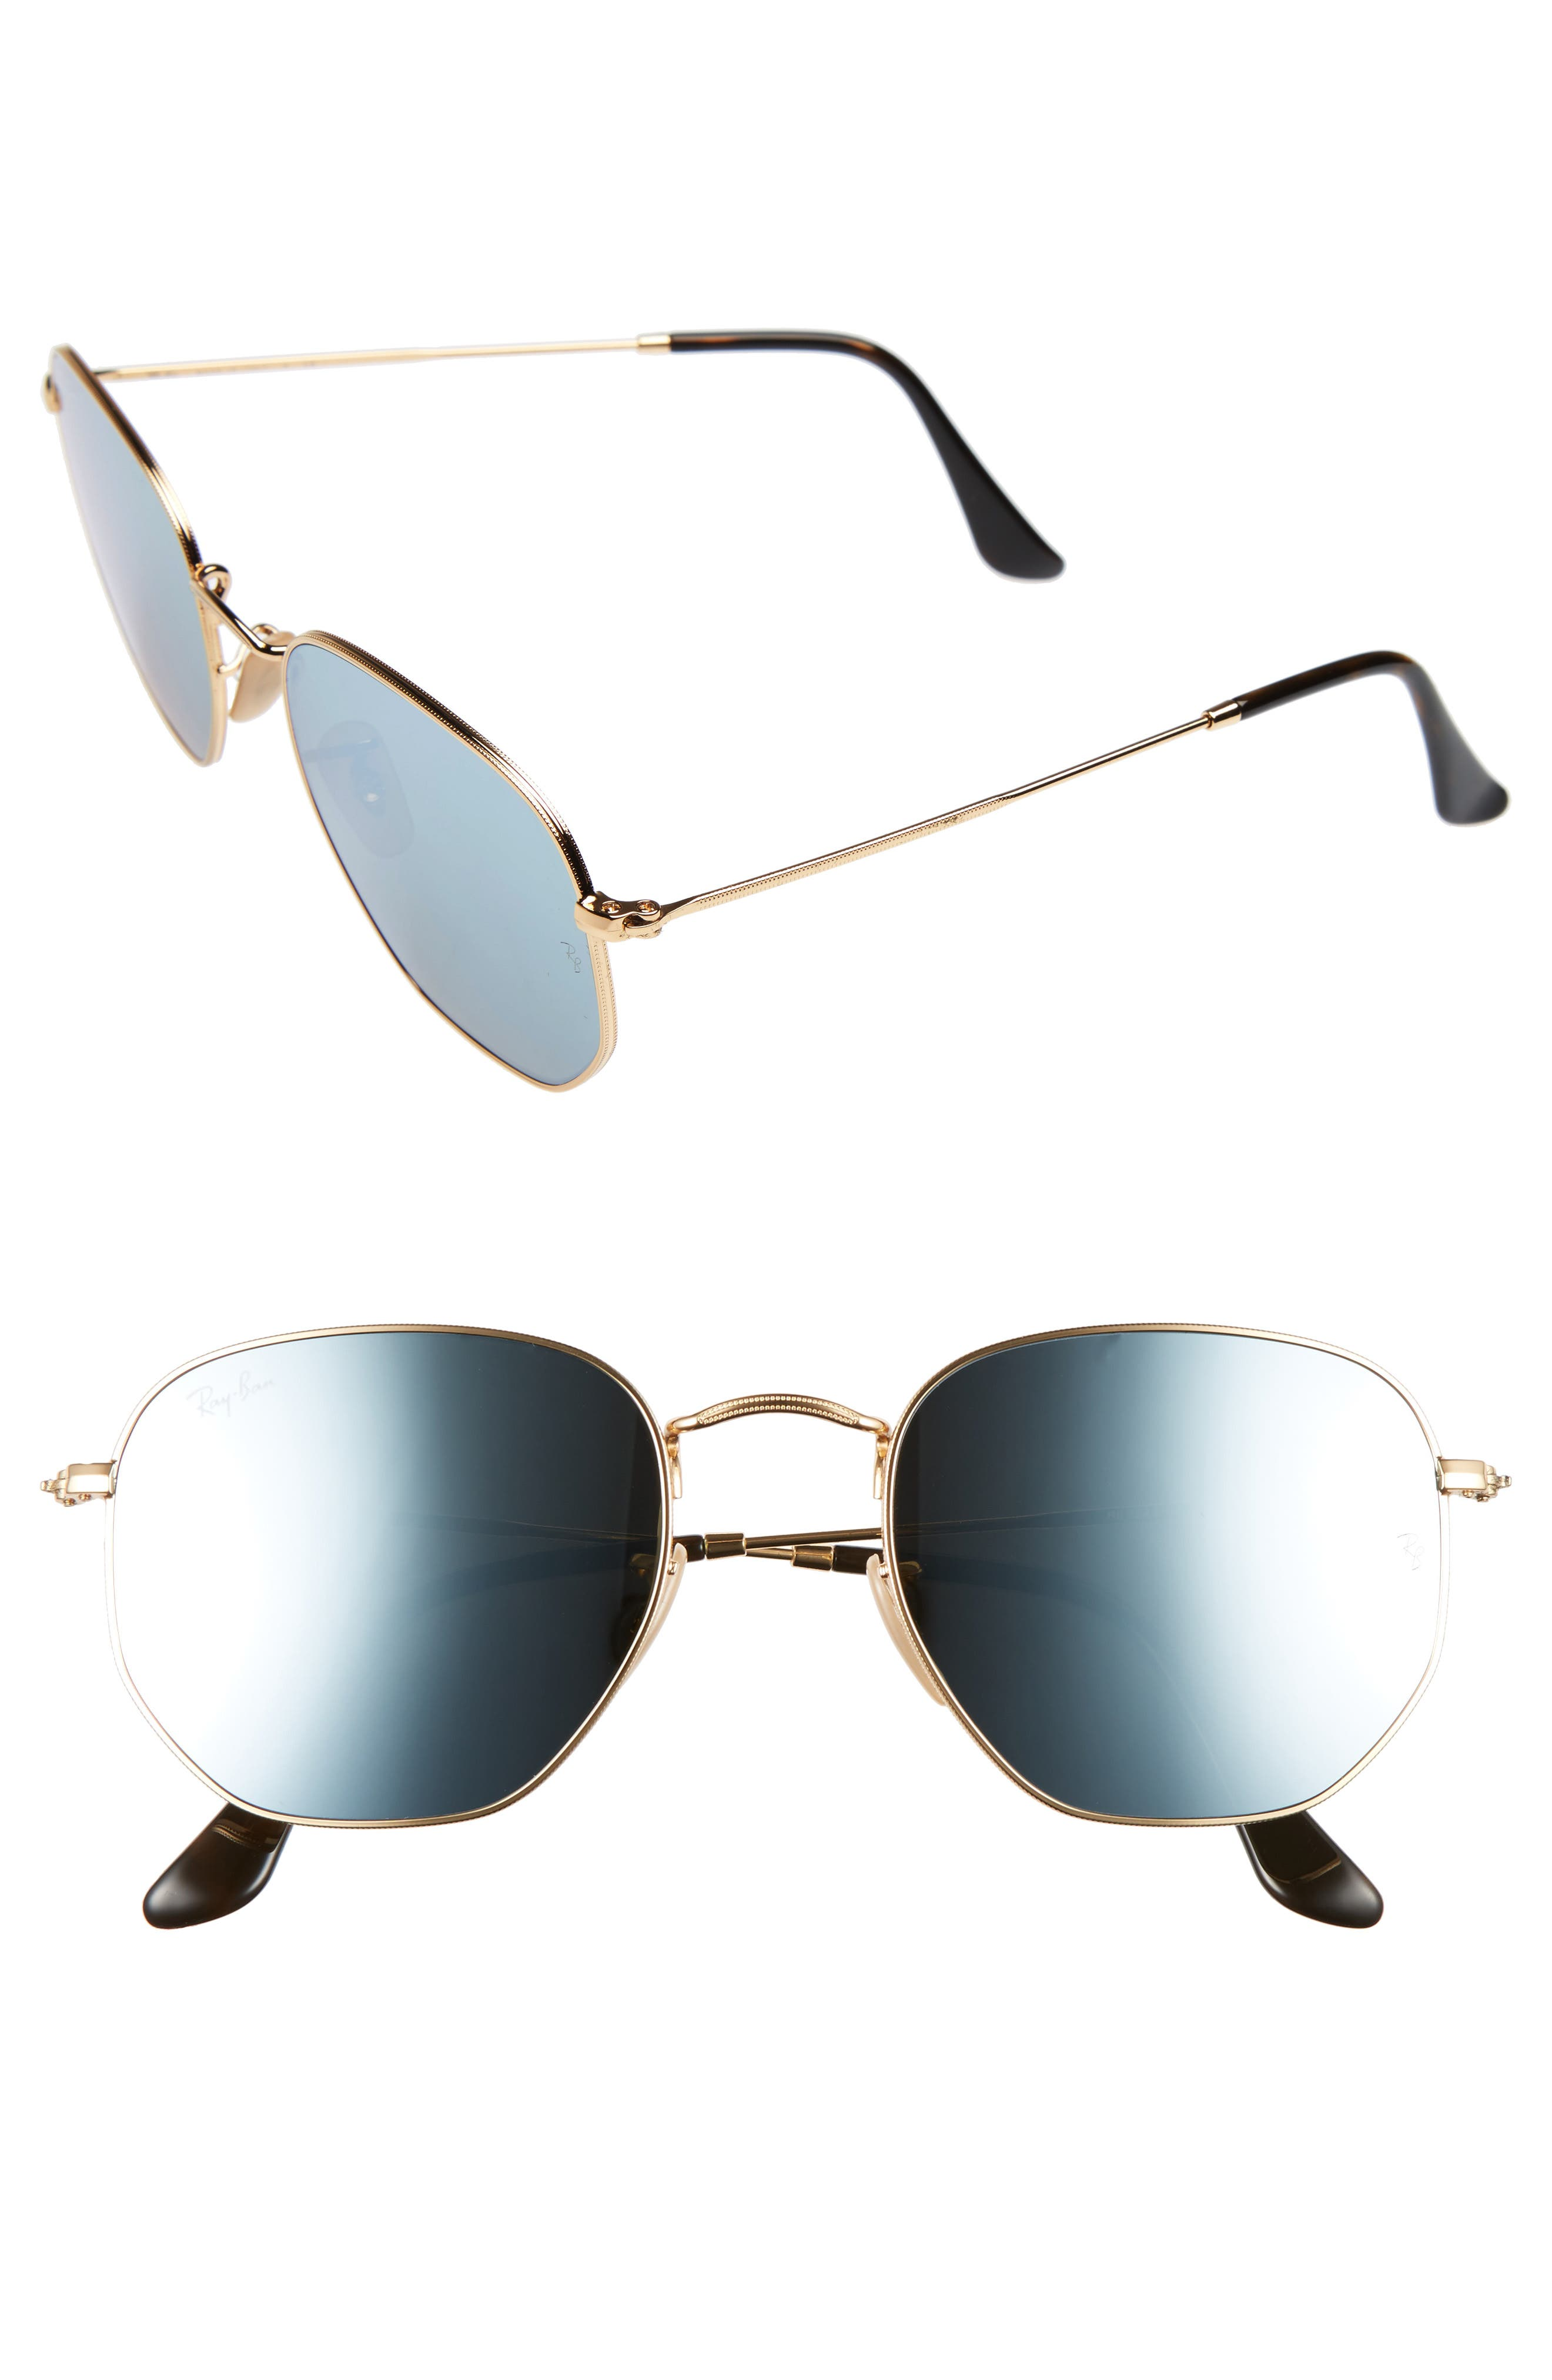 Main Image - Ray-Ban 54mm Hexagonal Flat Lens Sunglasses